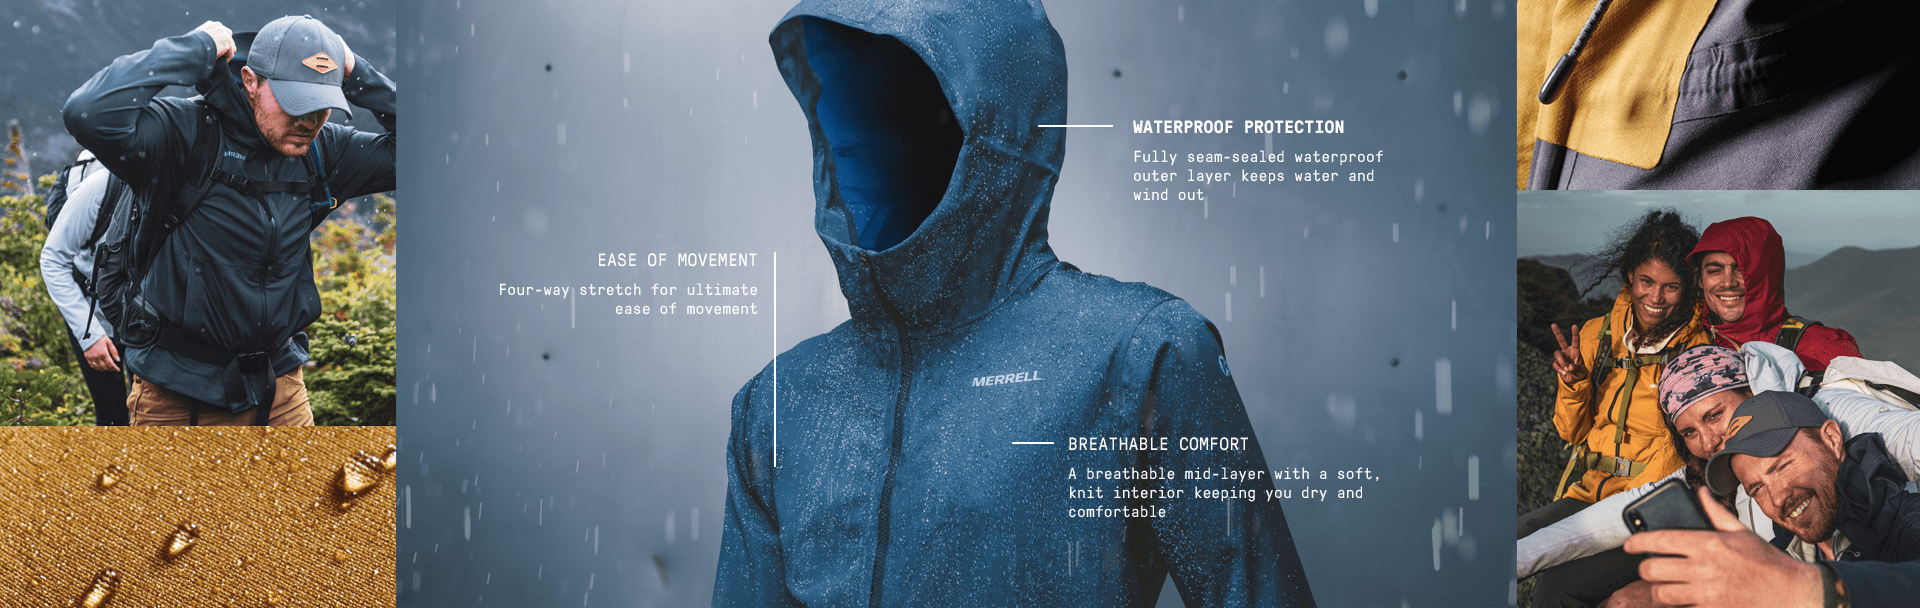 EASE OF MOVEMENT. Four-way stretch for ultimate ease of movement. 